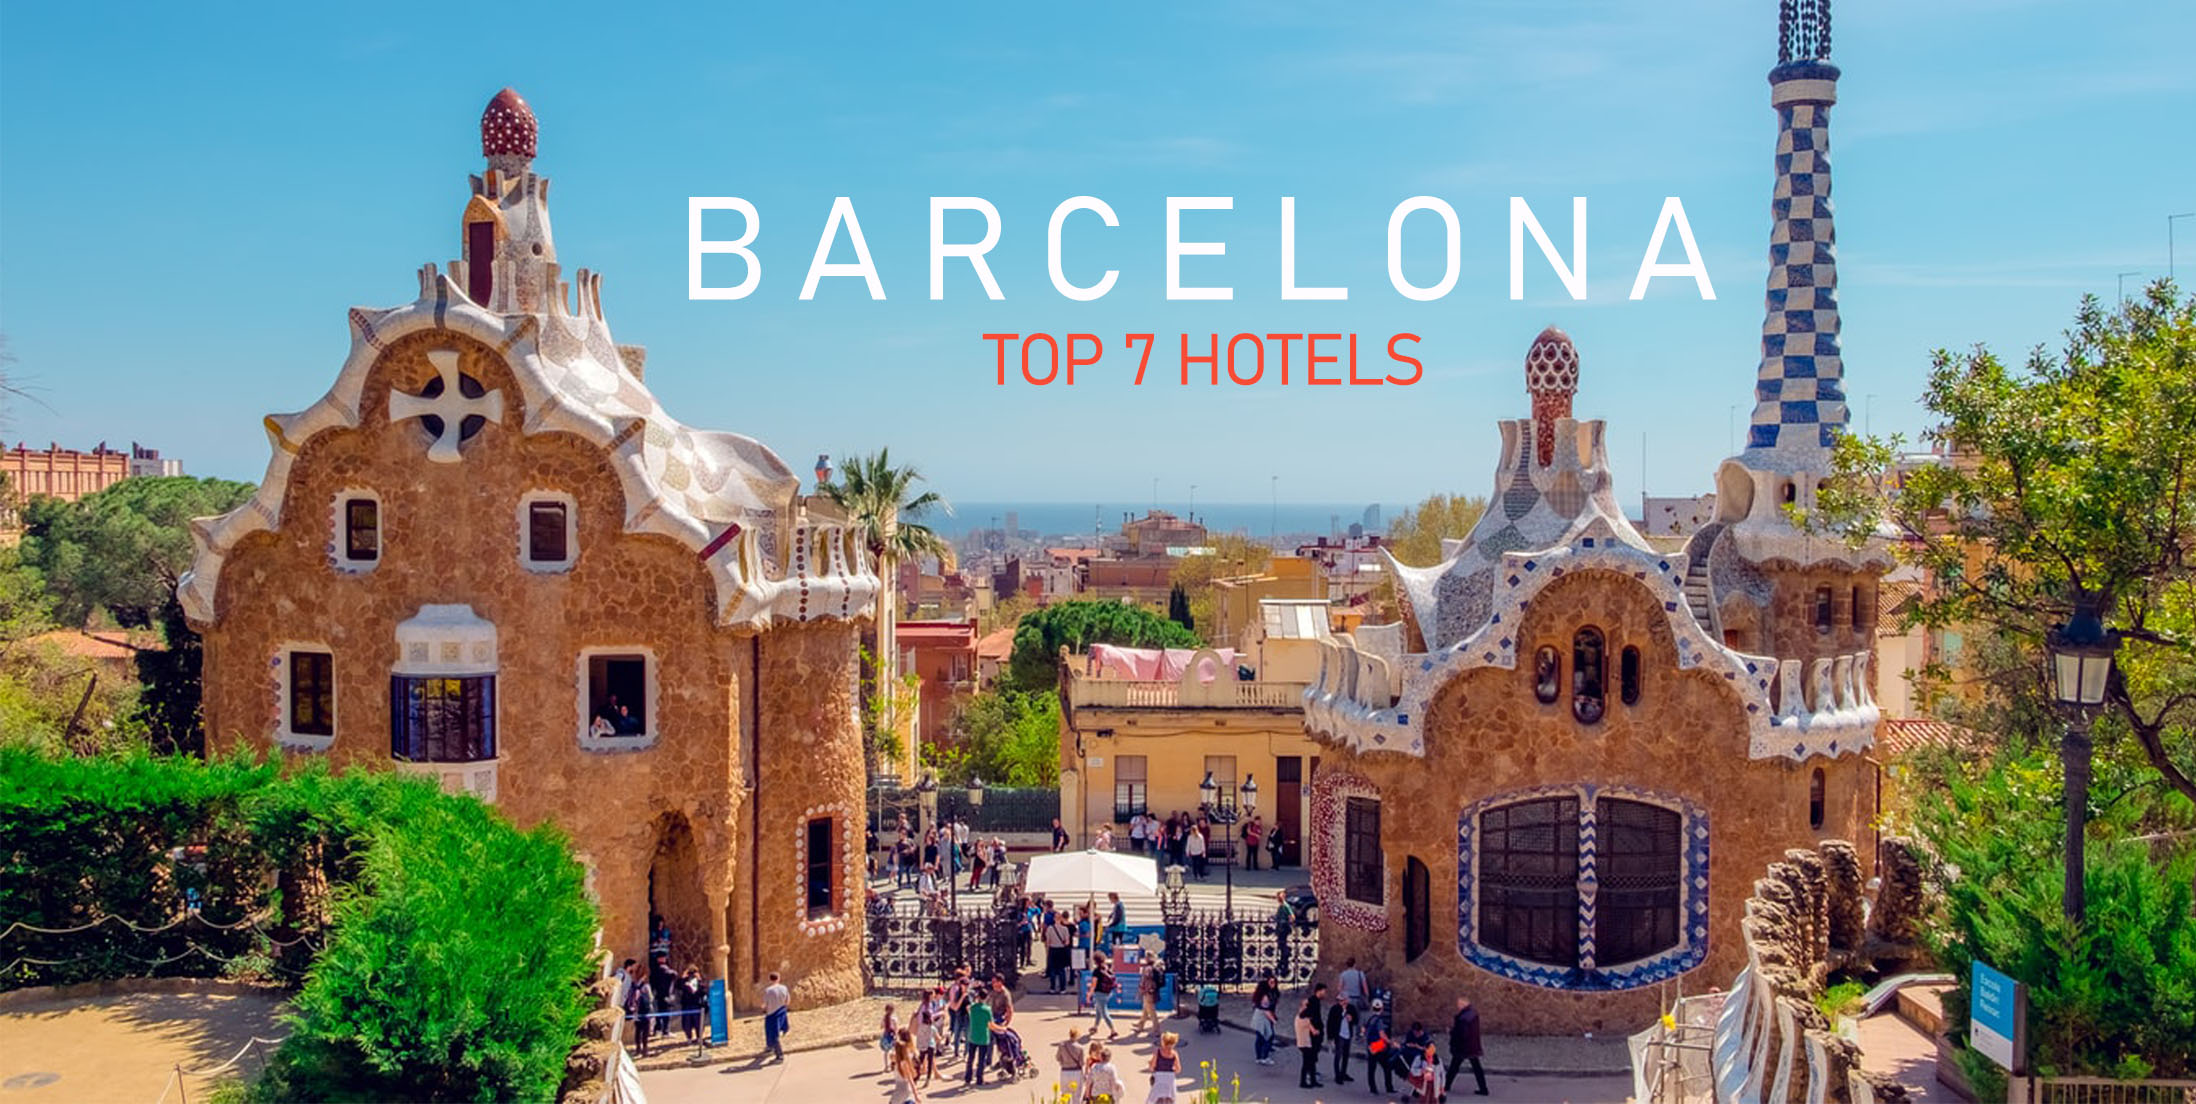 Top 7 Hotels in Barcelona for Groups